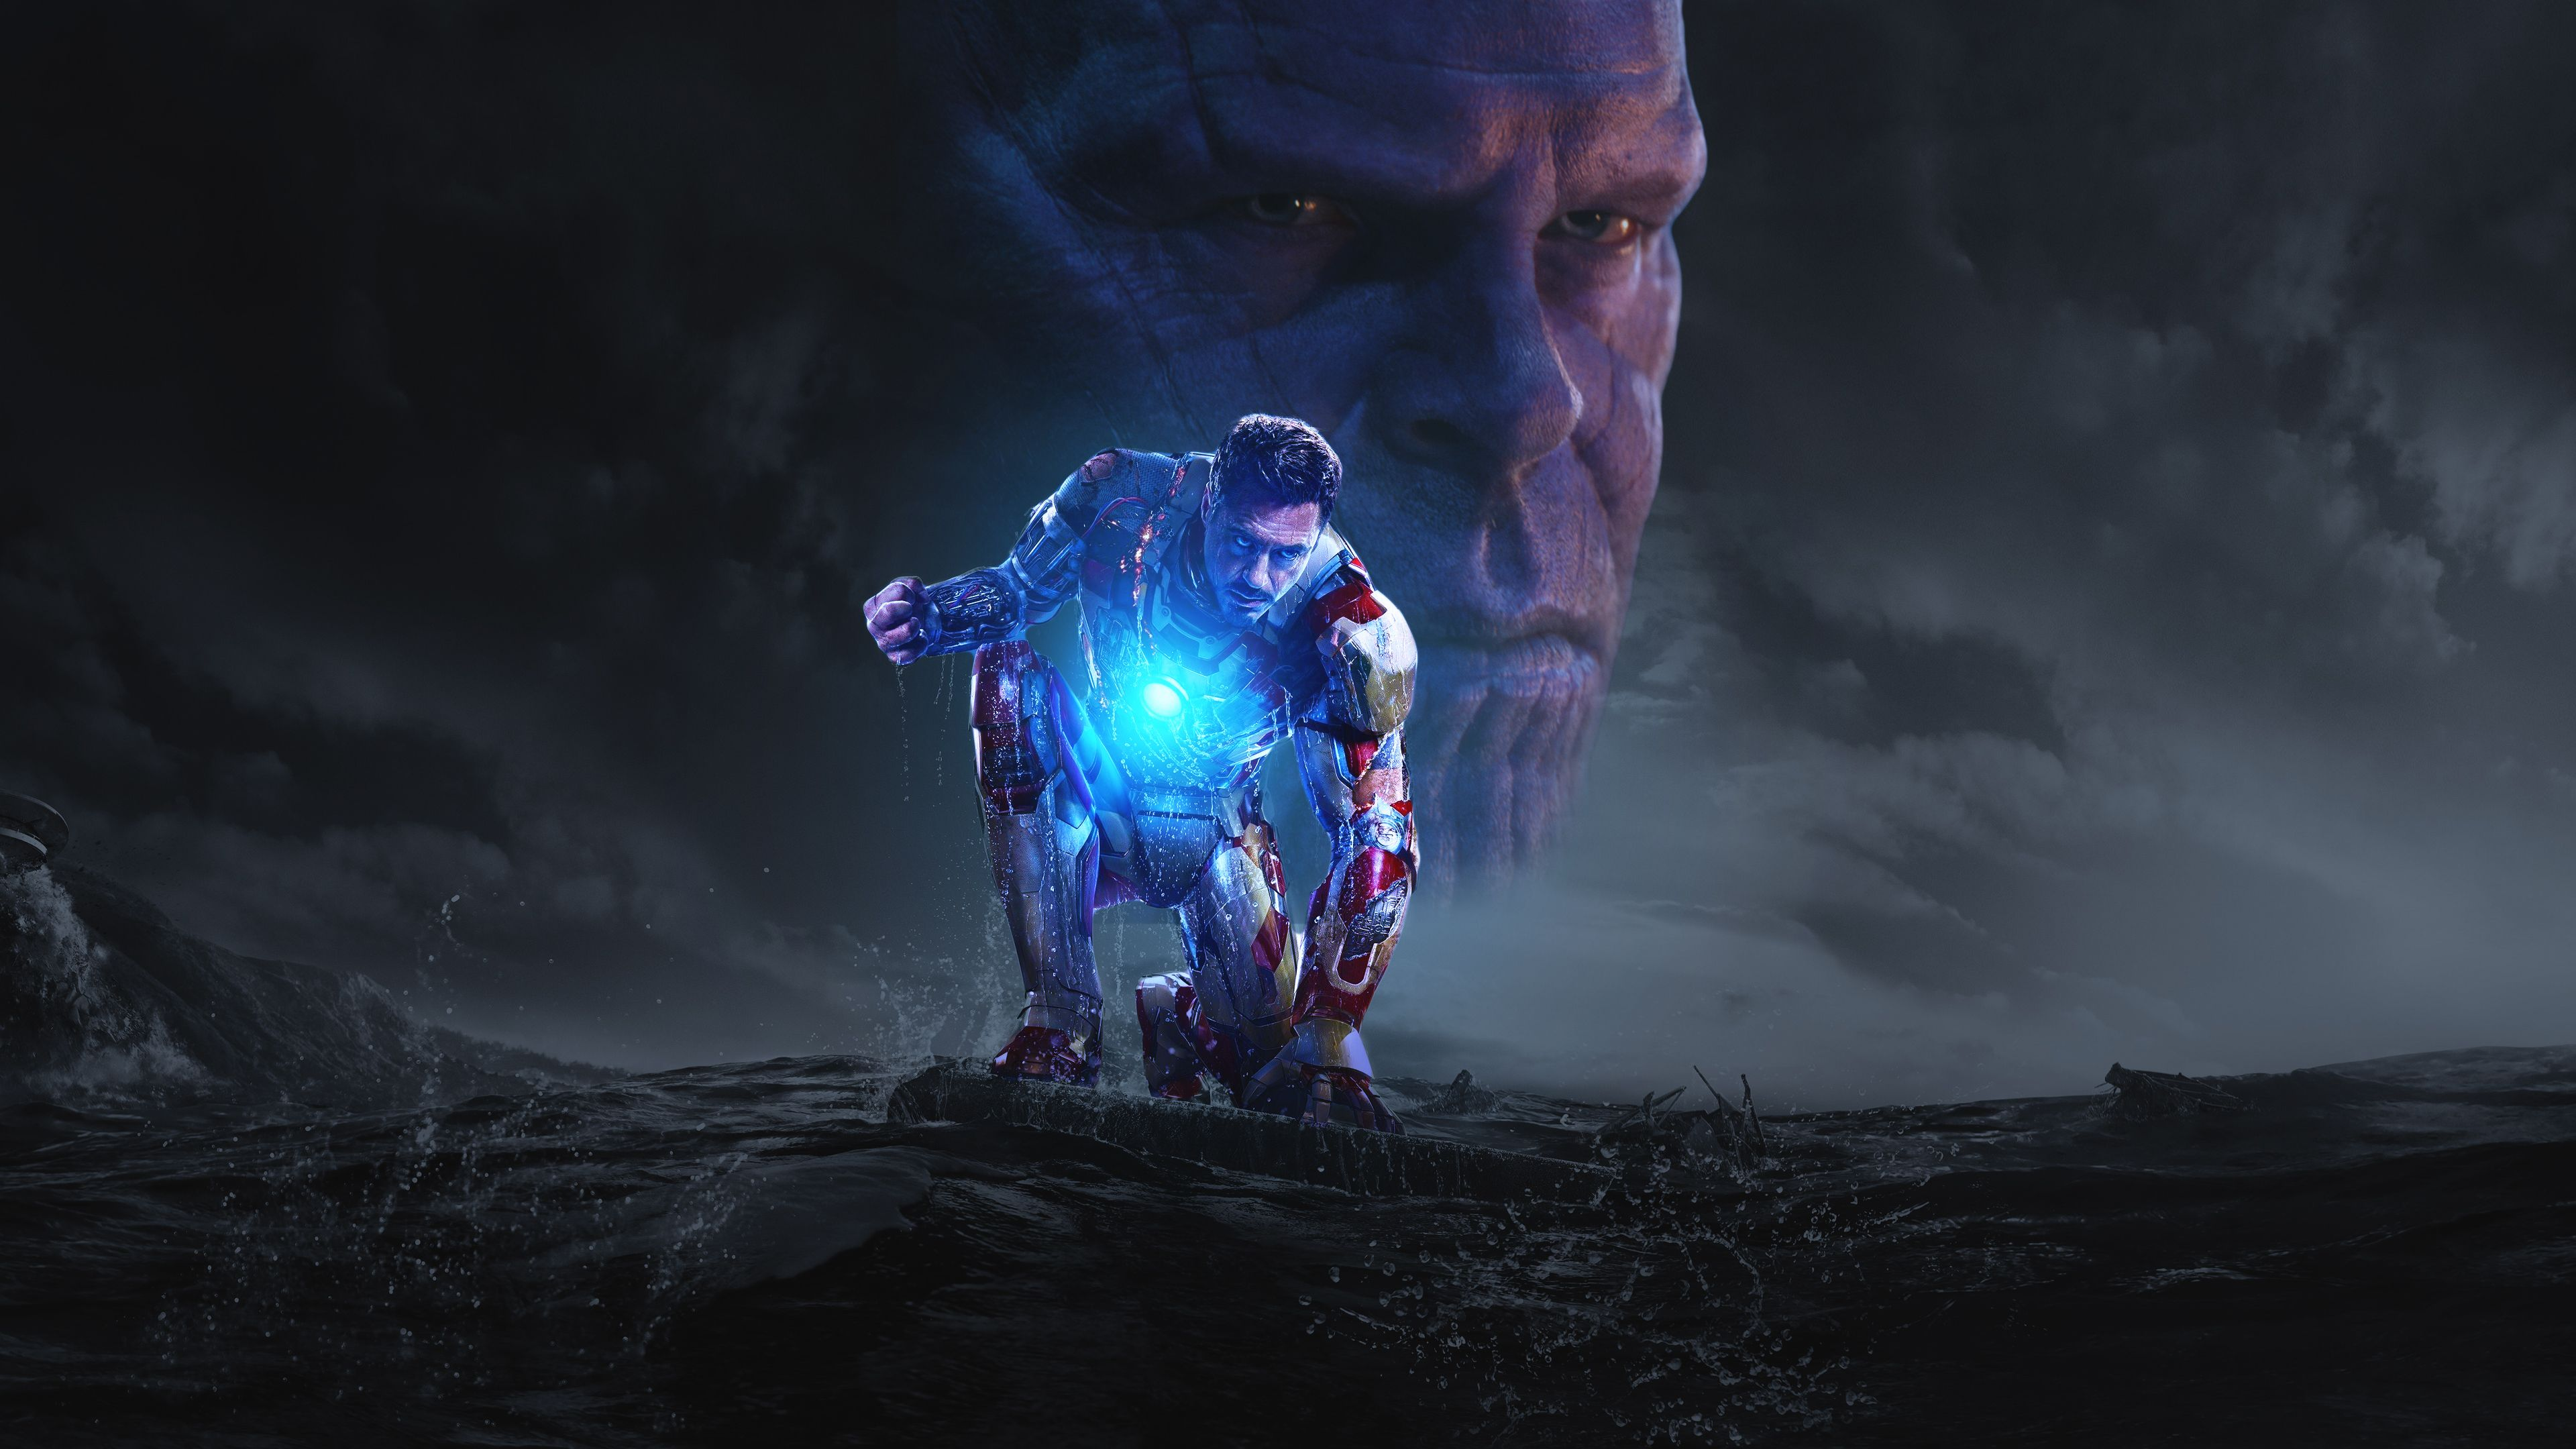 Oled Infinity Gauntlet Wallpapers Top Free Oled Infinity